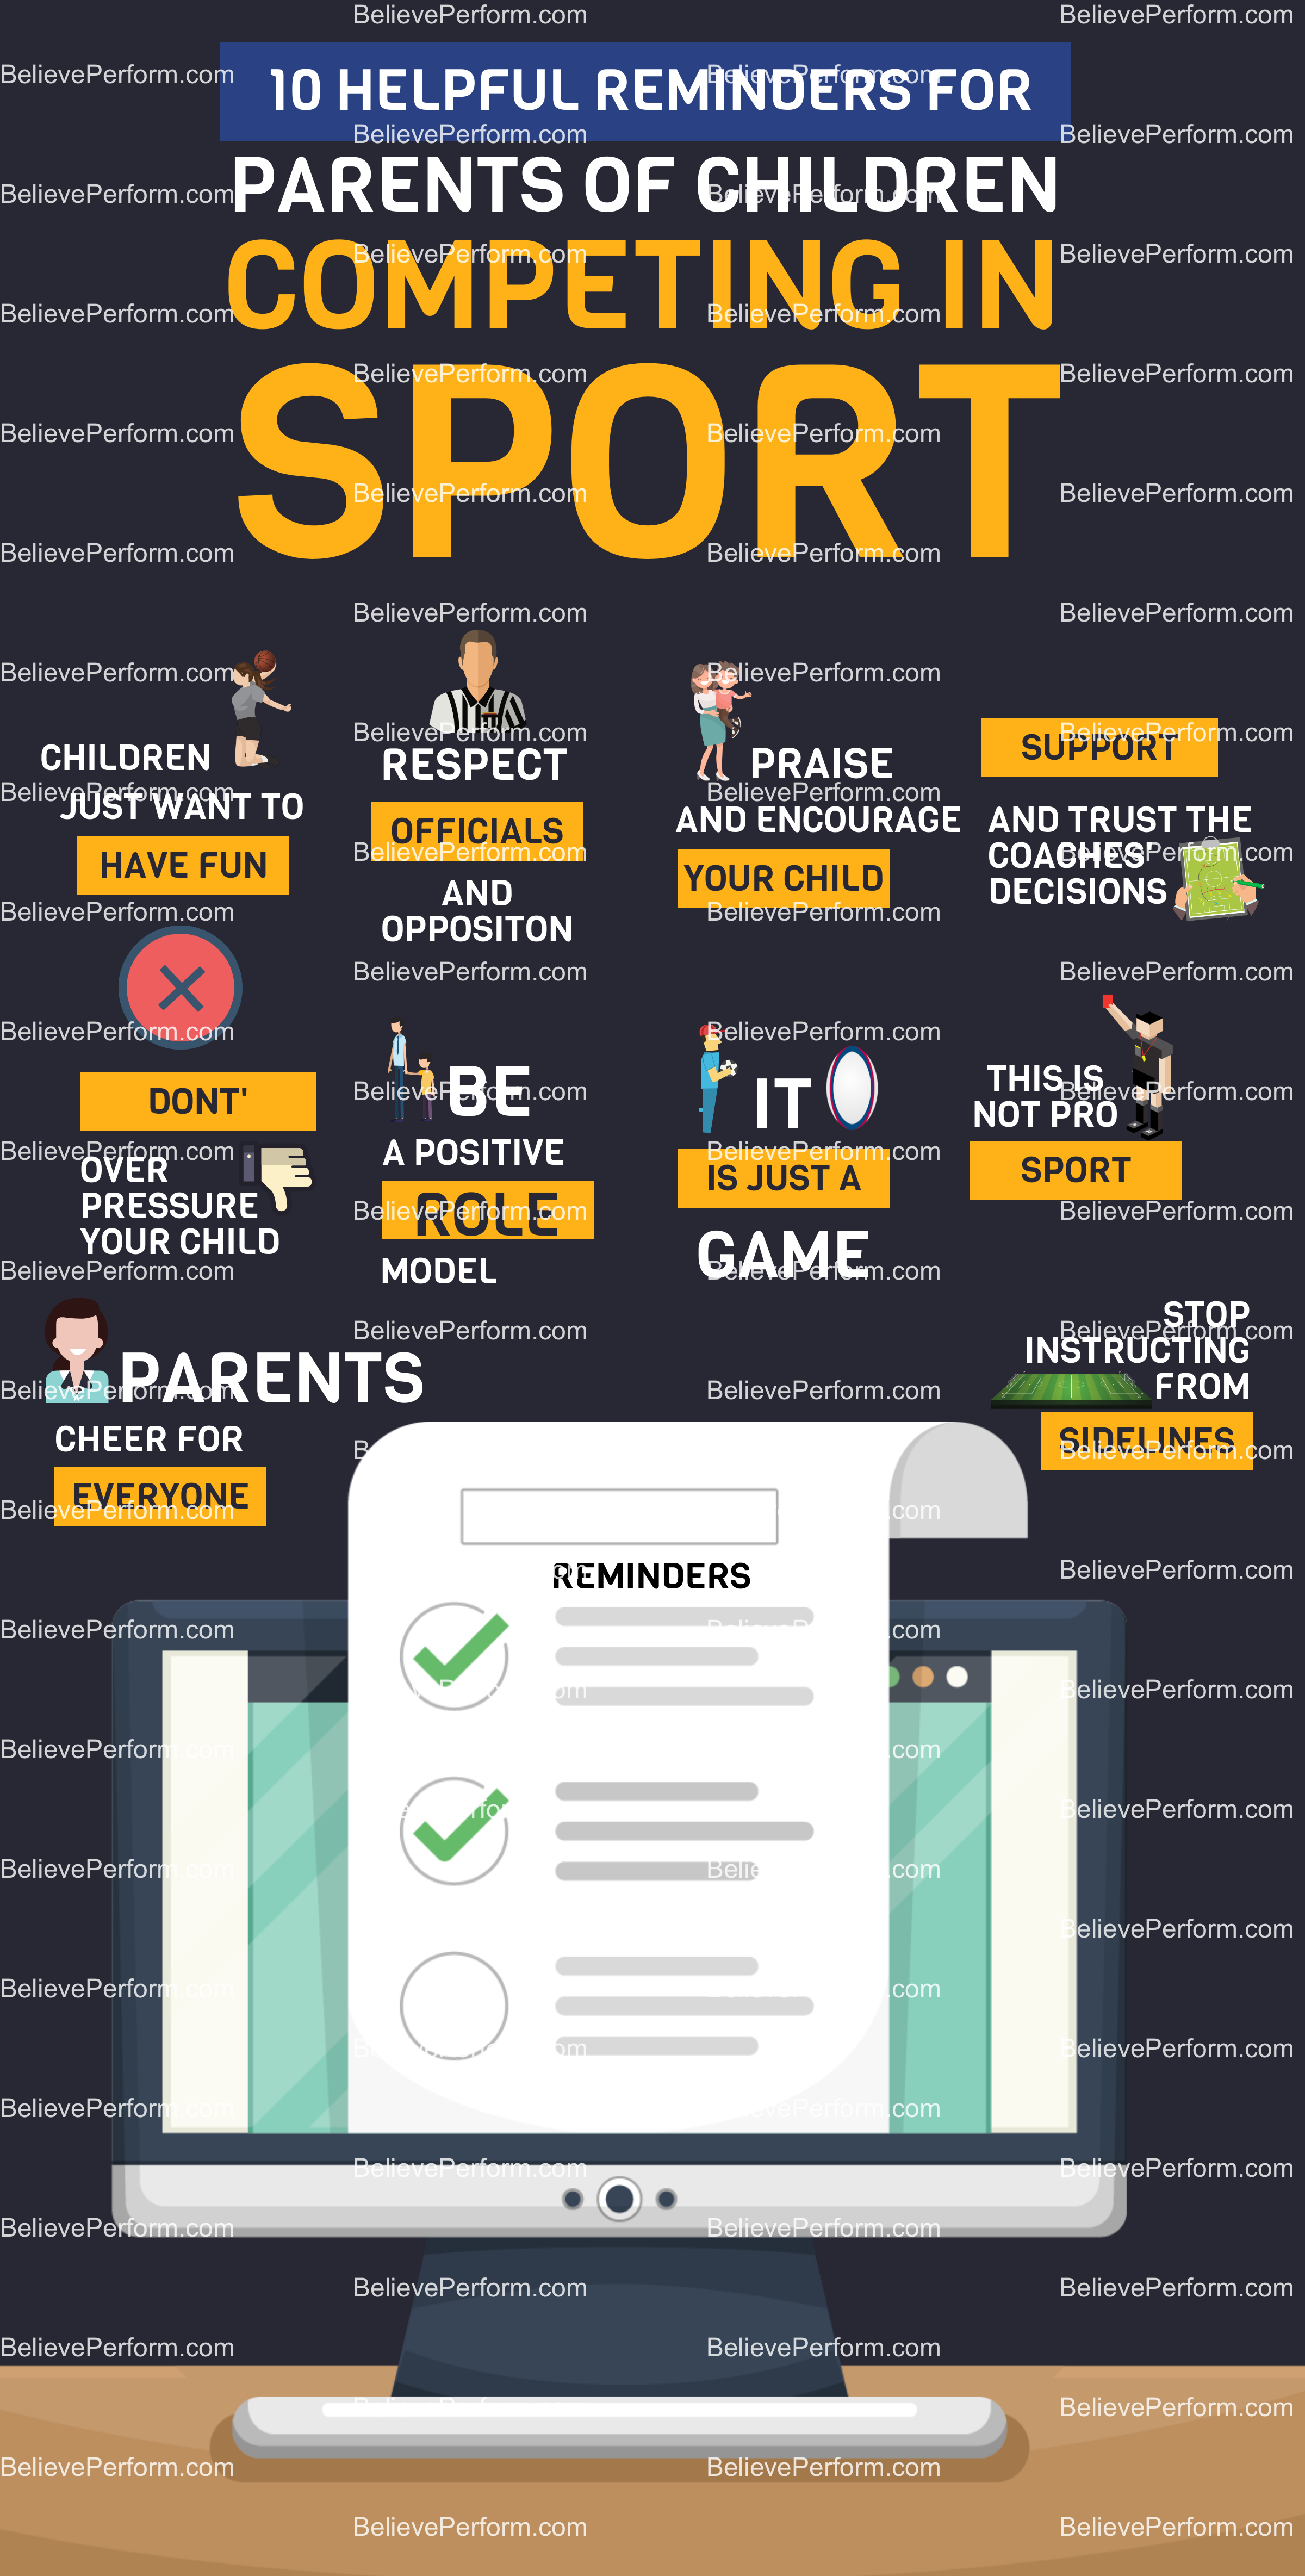 10 helpful reminders for parents of children competing in sport